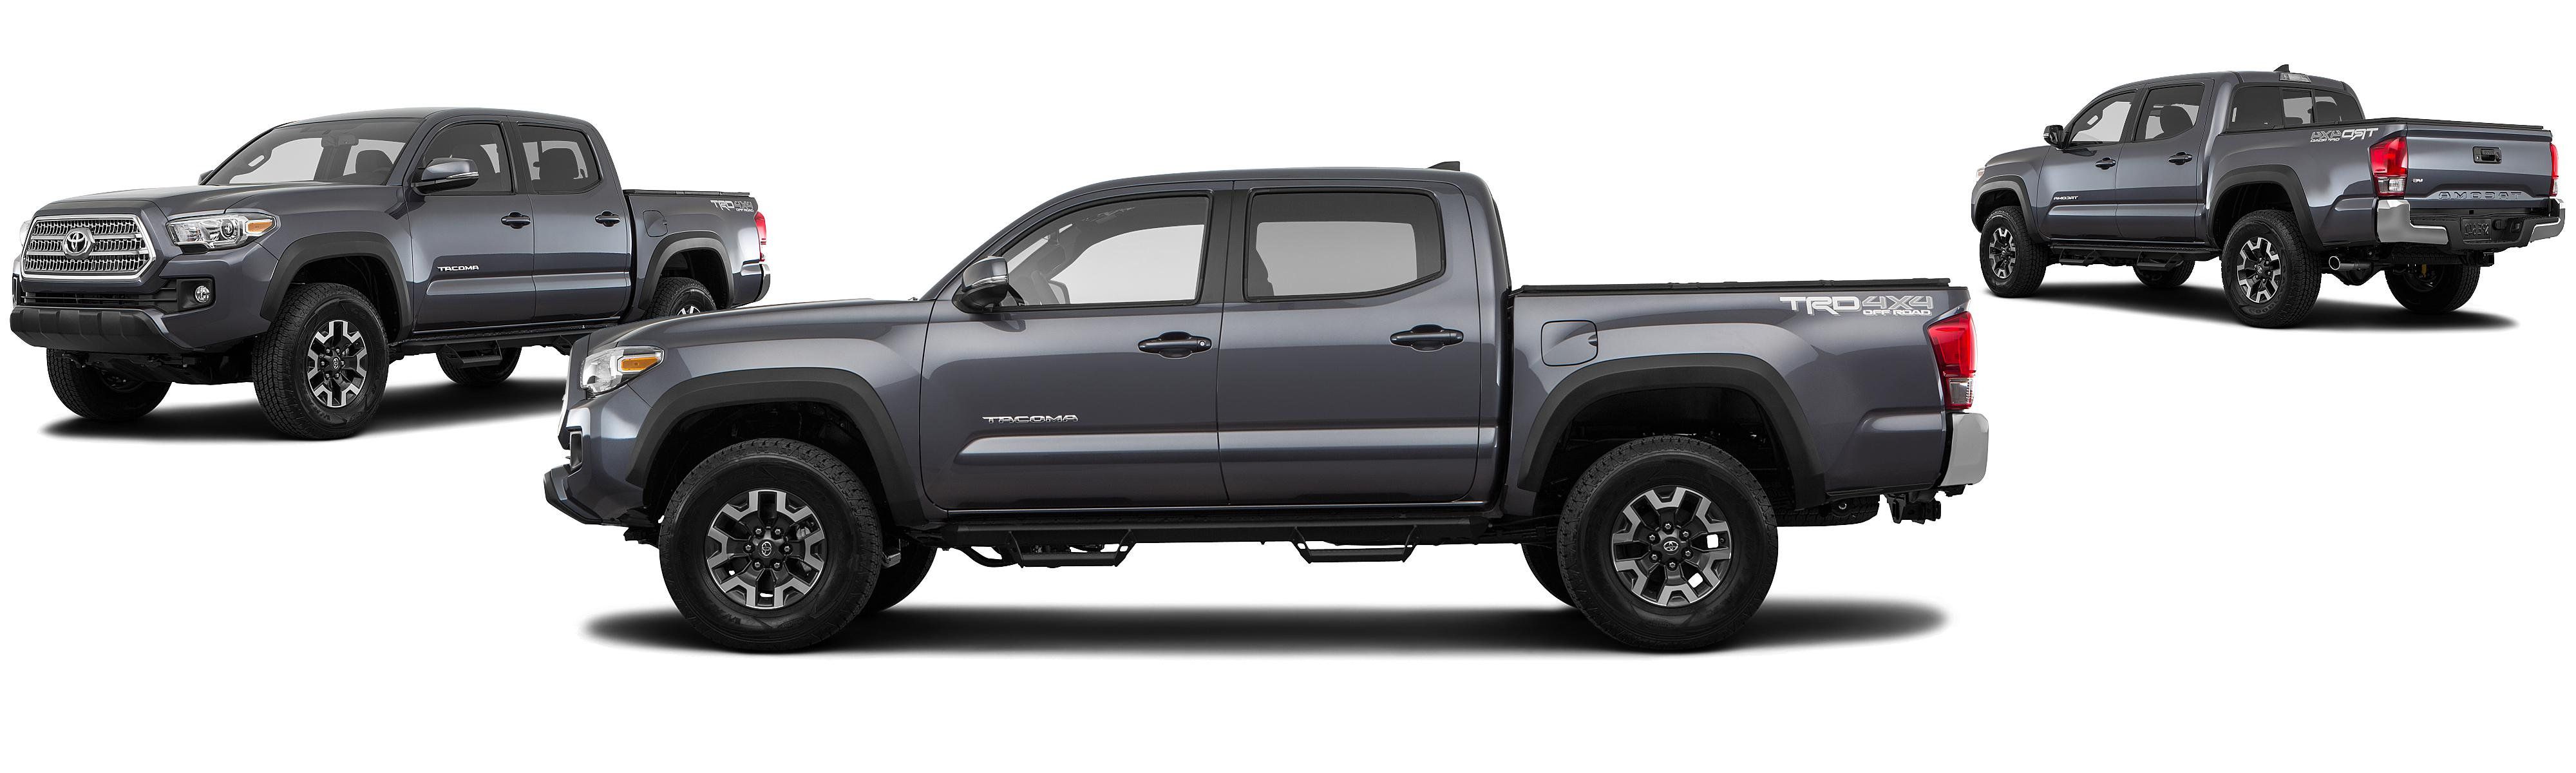 2017 Tacoma Trd Sport Price >> 2017 Toyota Tacoma Trd Off Road Automatic 4wd Double Cab Long Box | Best new cars for 2018